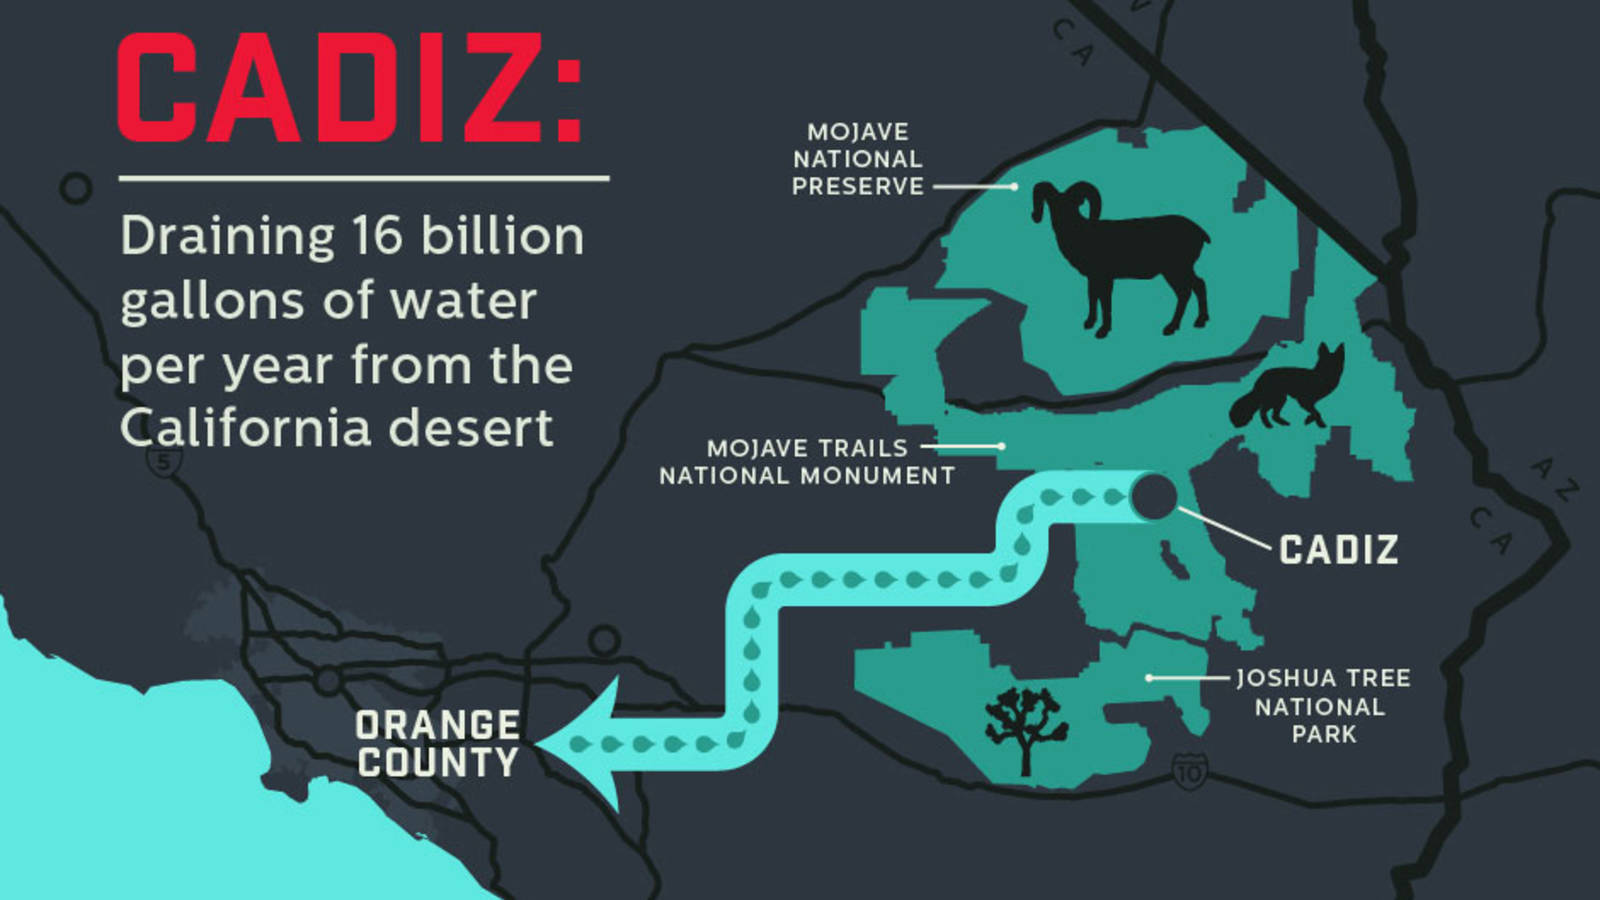 - Protect desert groundwater from wasteful exploitation.